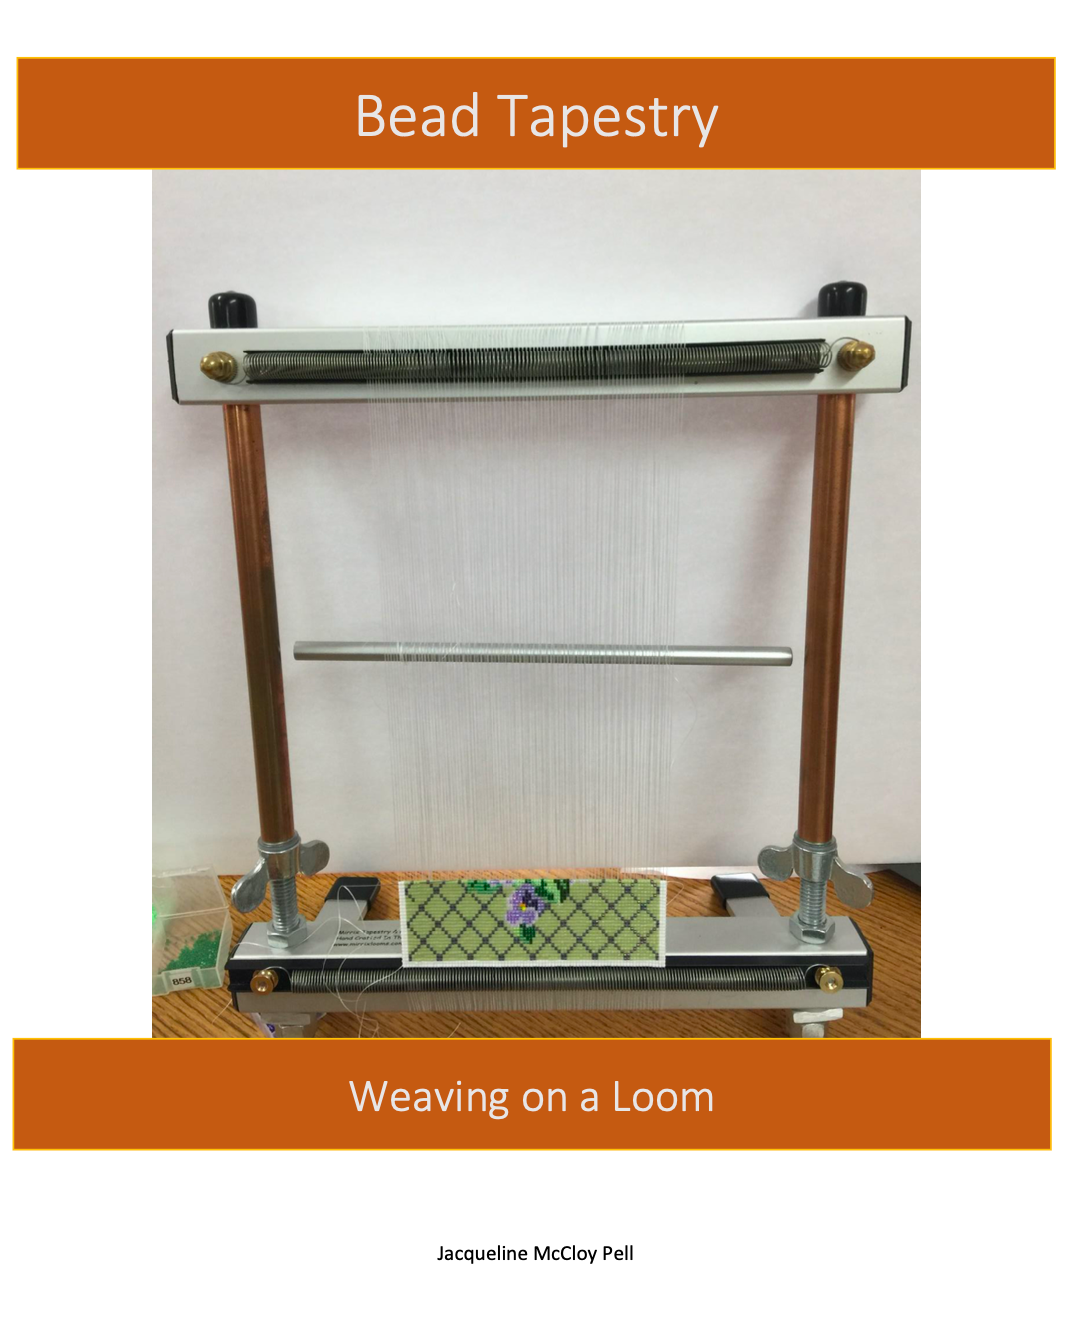 bead tapestry: weaving on a loom